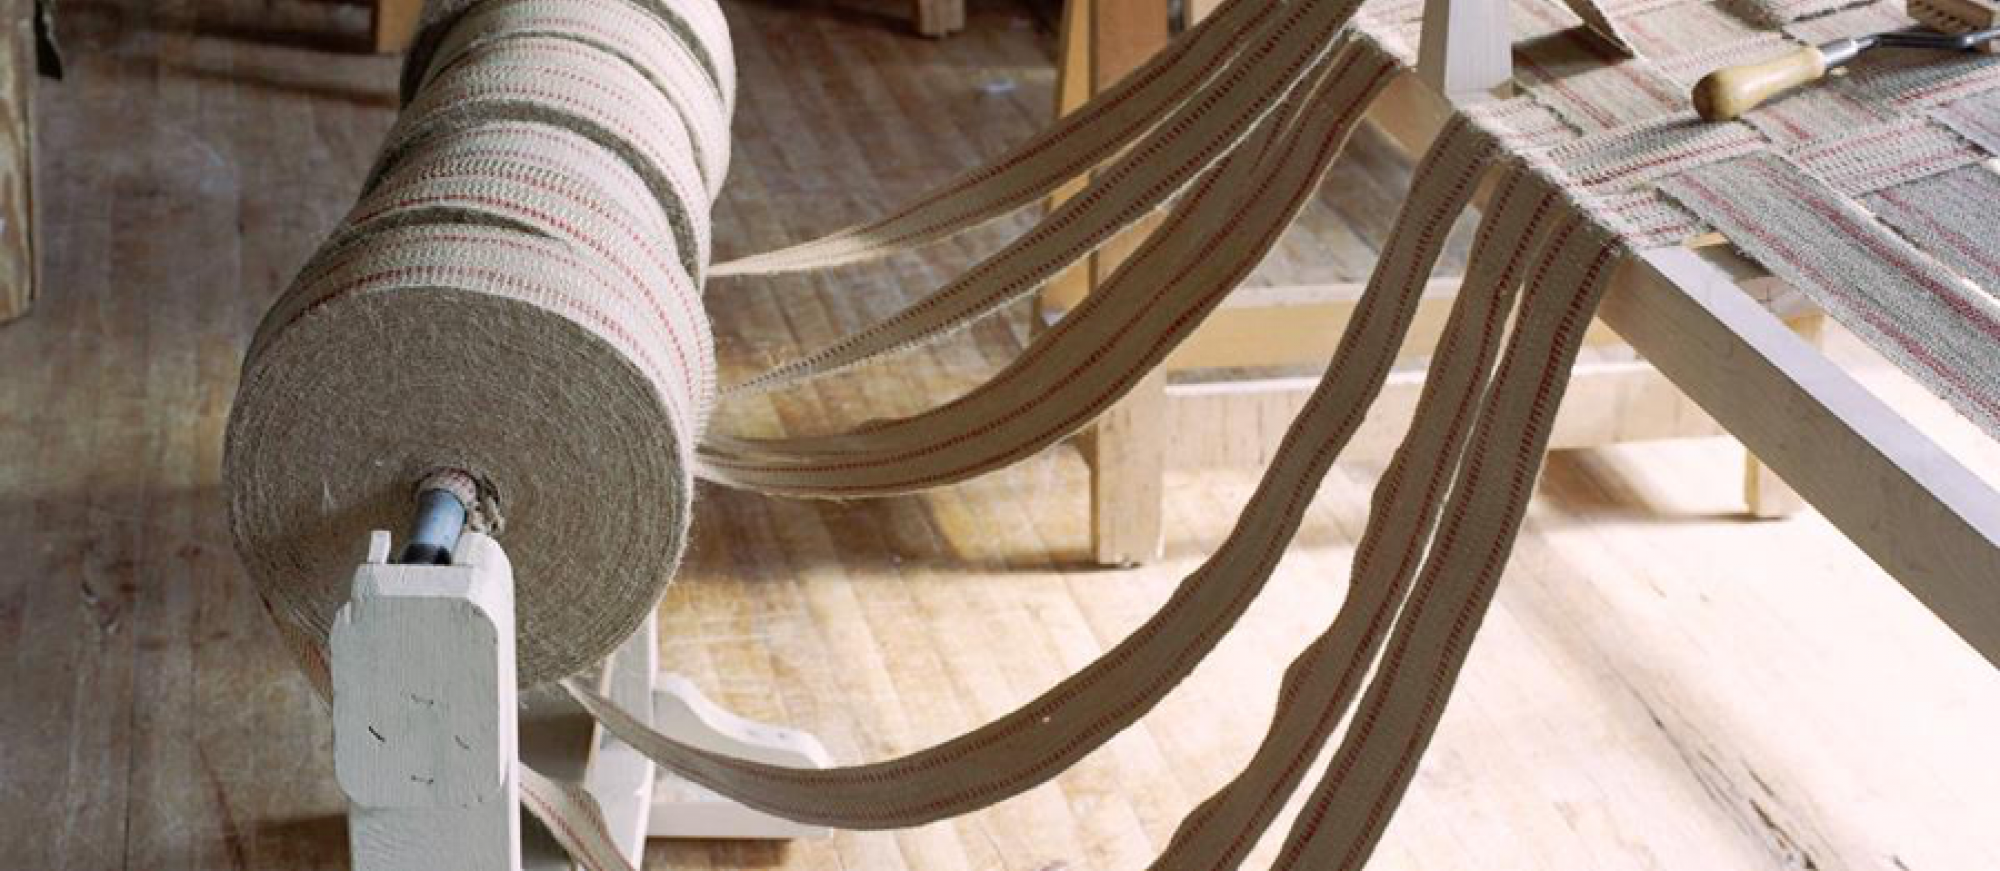 Kiln-dried hardwood frames topped with jute webbing create a strong, durable and supportive base for sofas. The process is illustrated here by Jonas Fine Upholsterers. (Image: Jonas Fine Upholsterers)